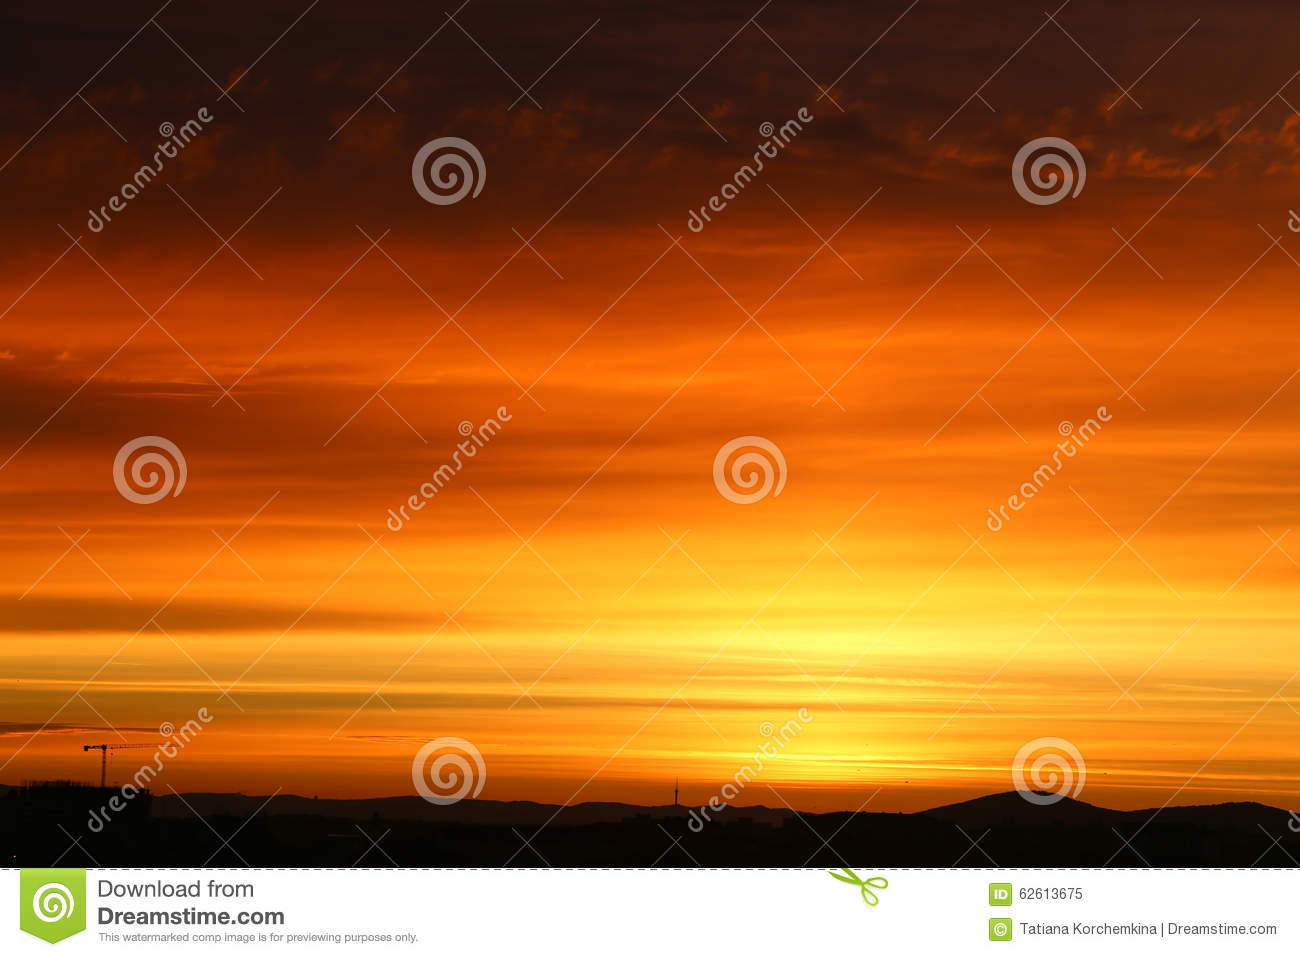 Beautiful sunsets in the sky